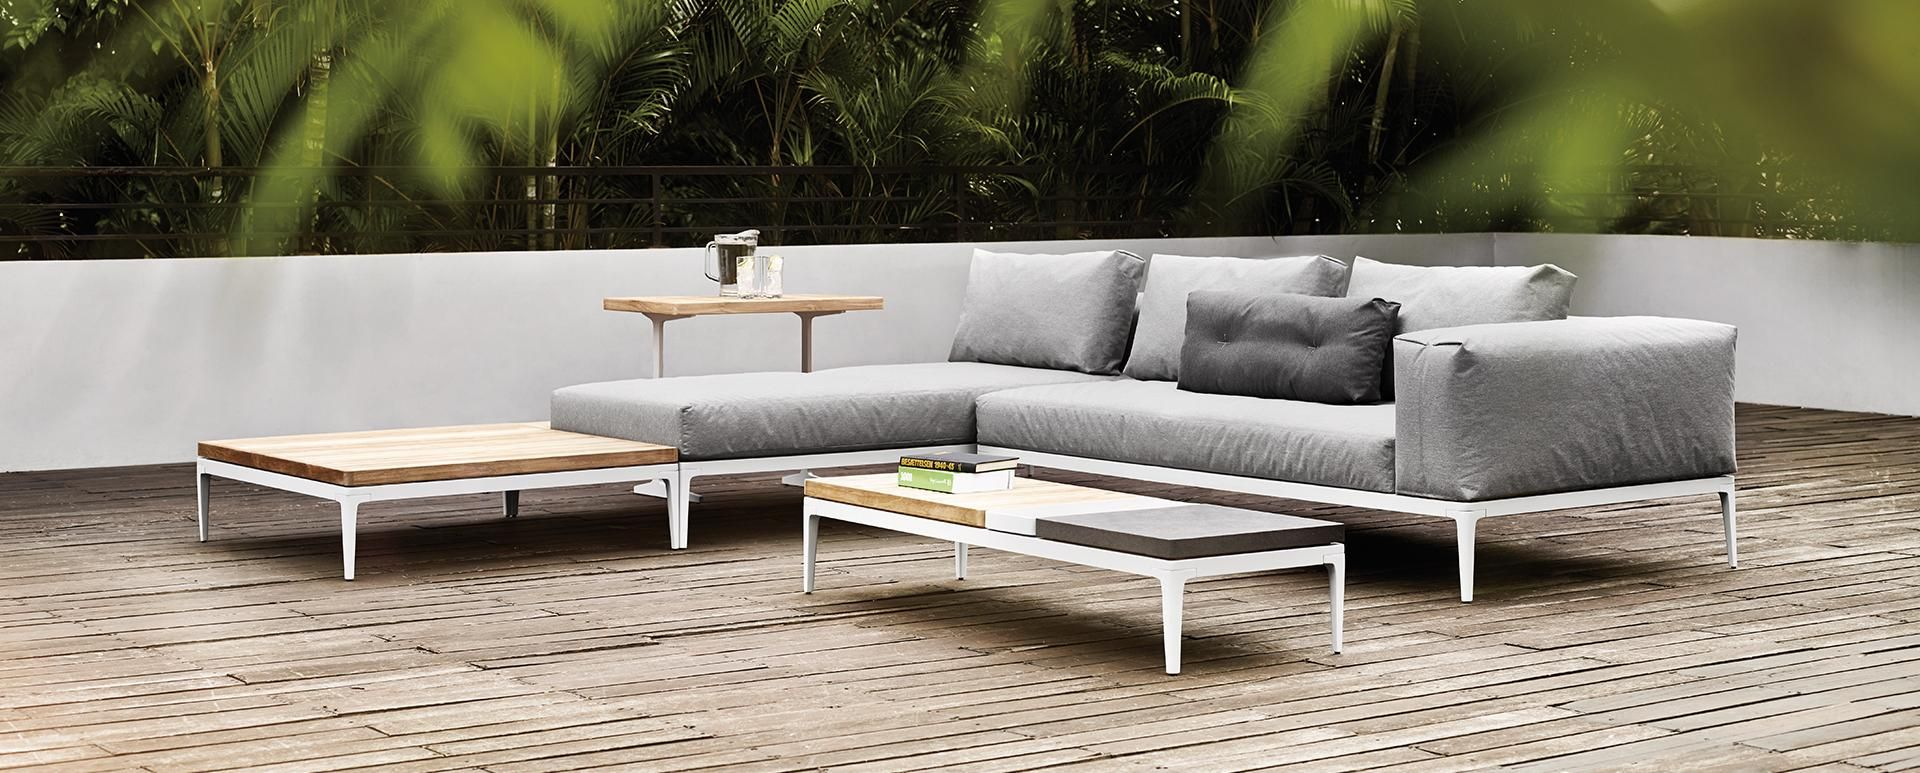 Outdoor Lounge Furniture Grid